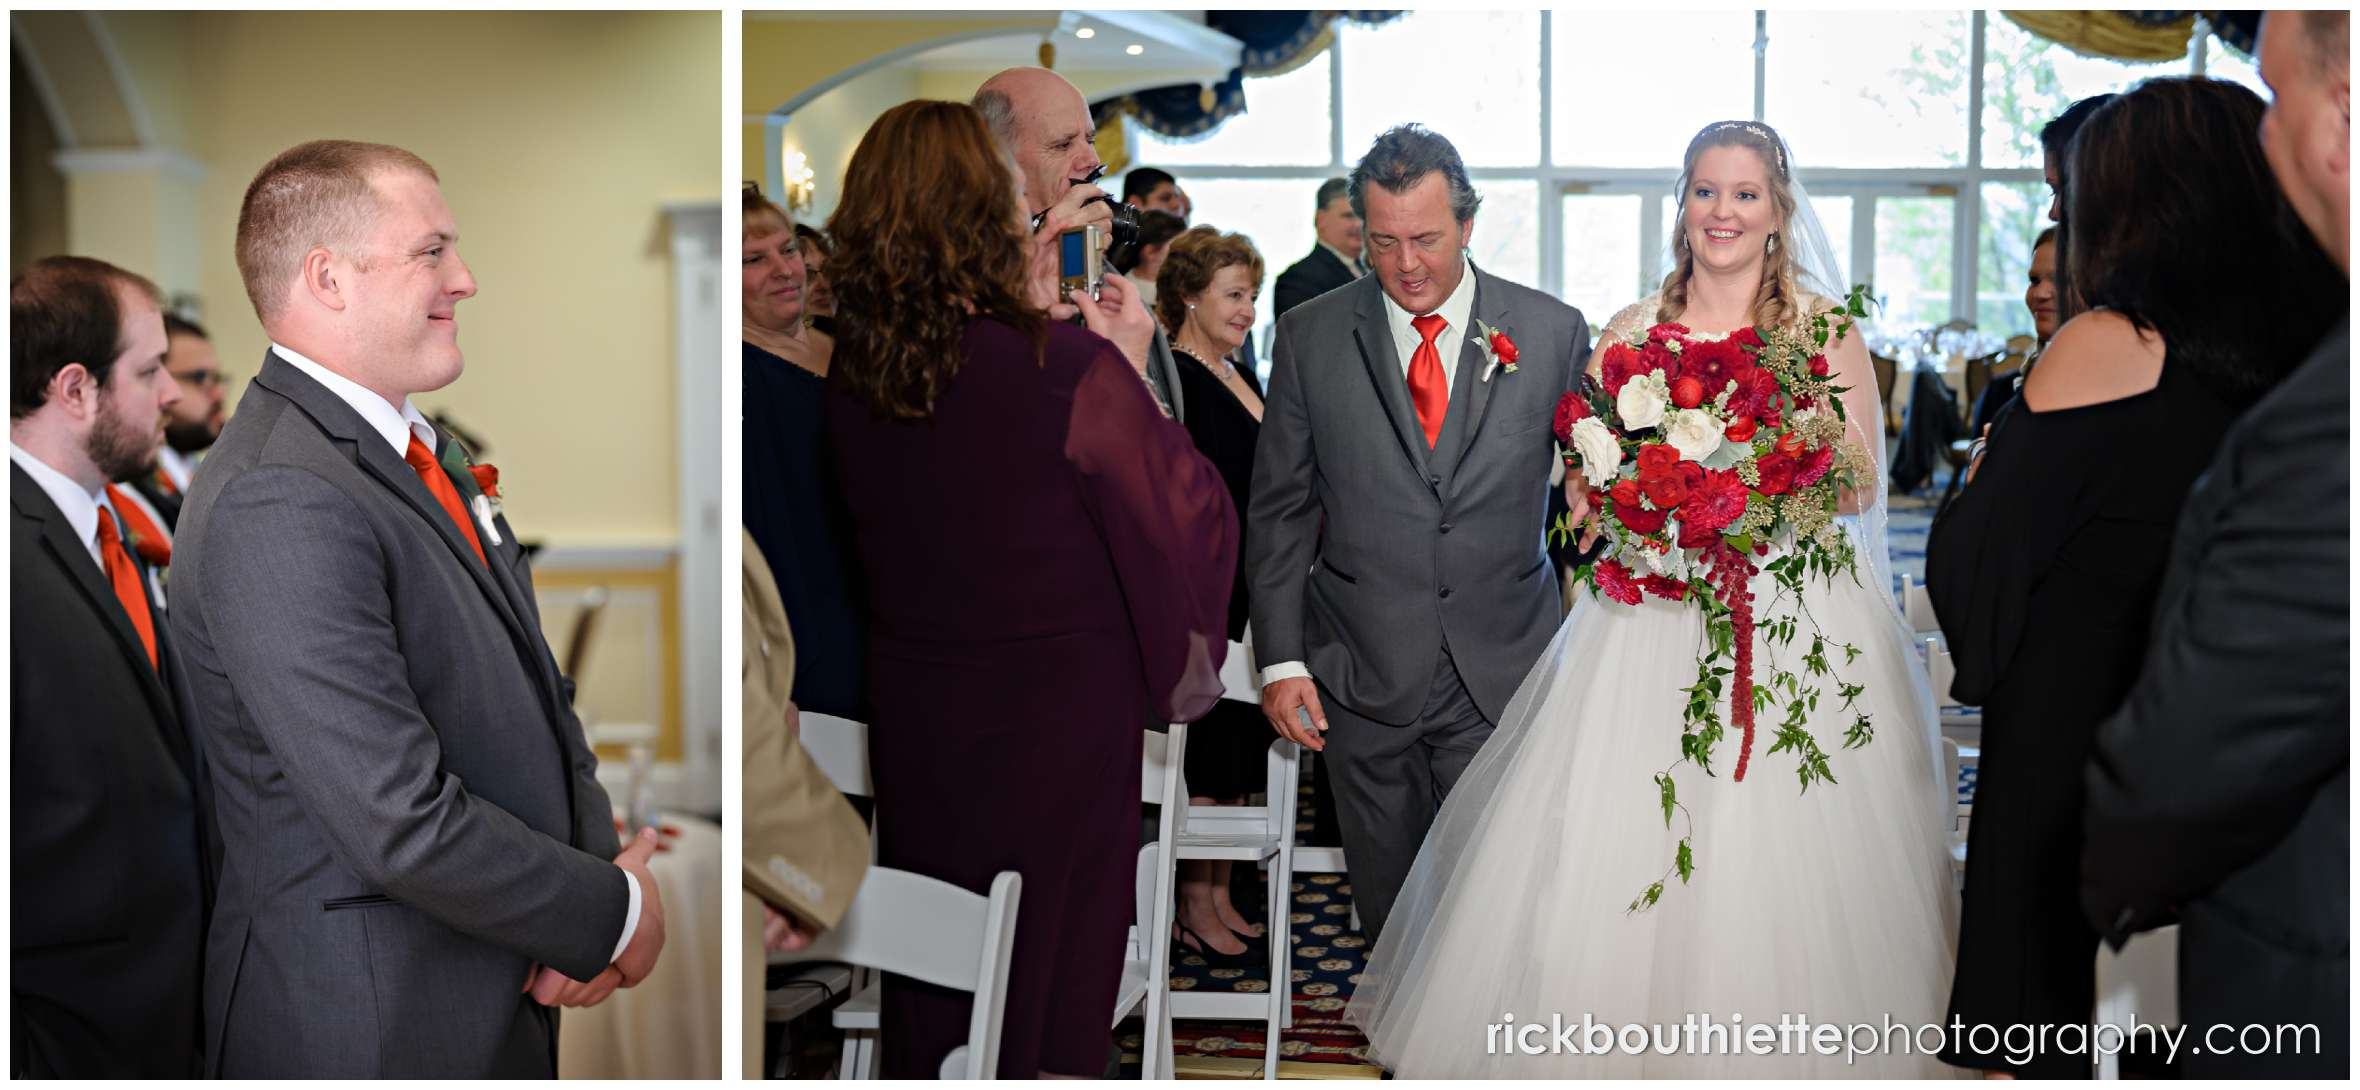 groom watching his bride walk down the aisle at mountain view grand wedding ceremony